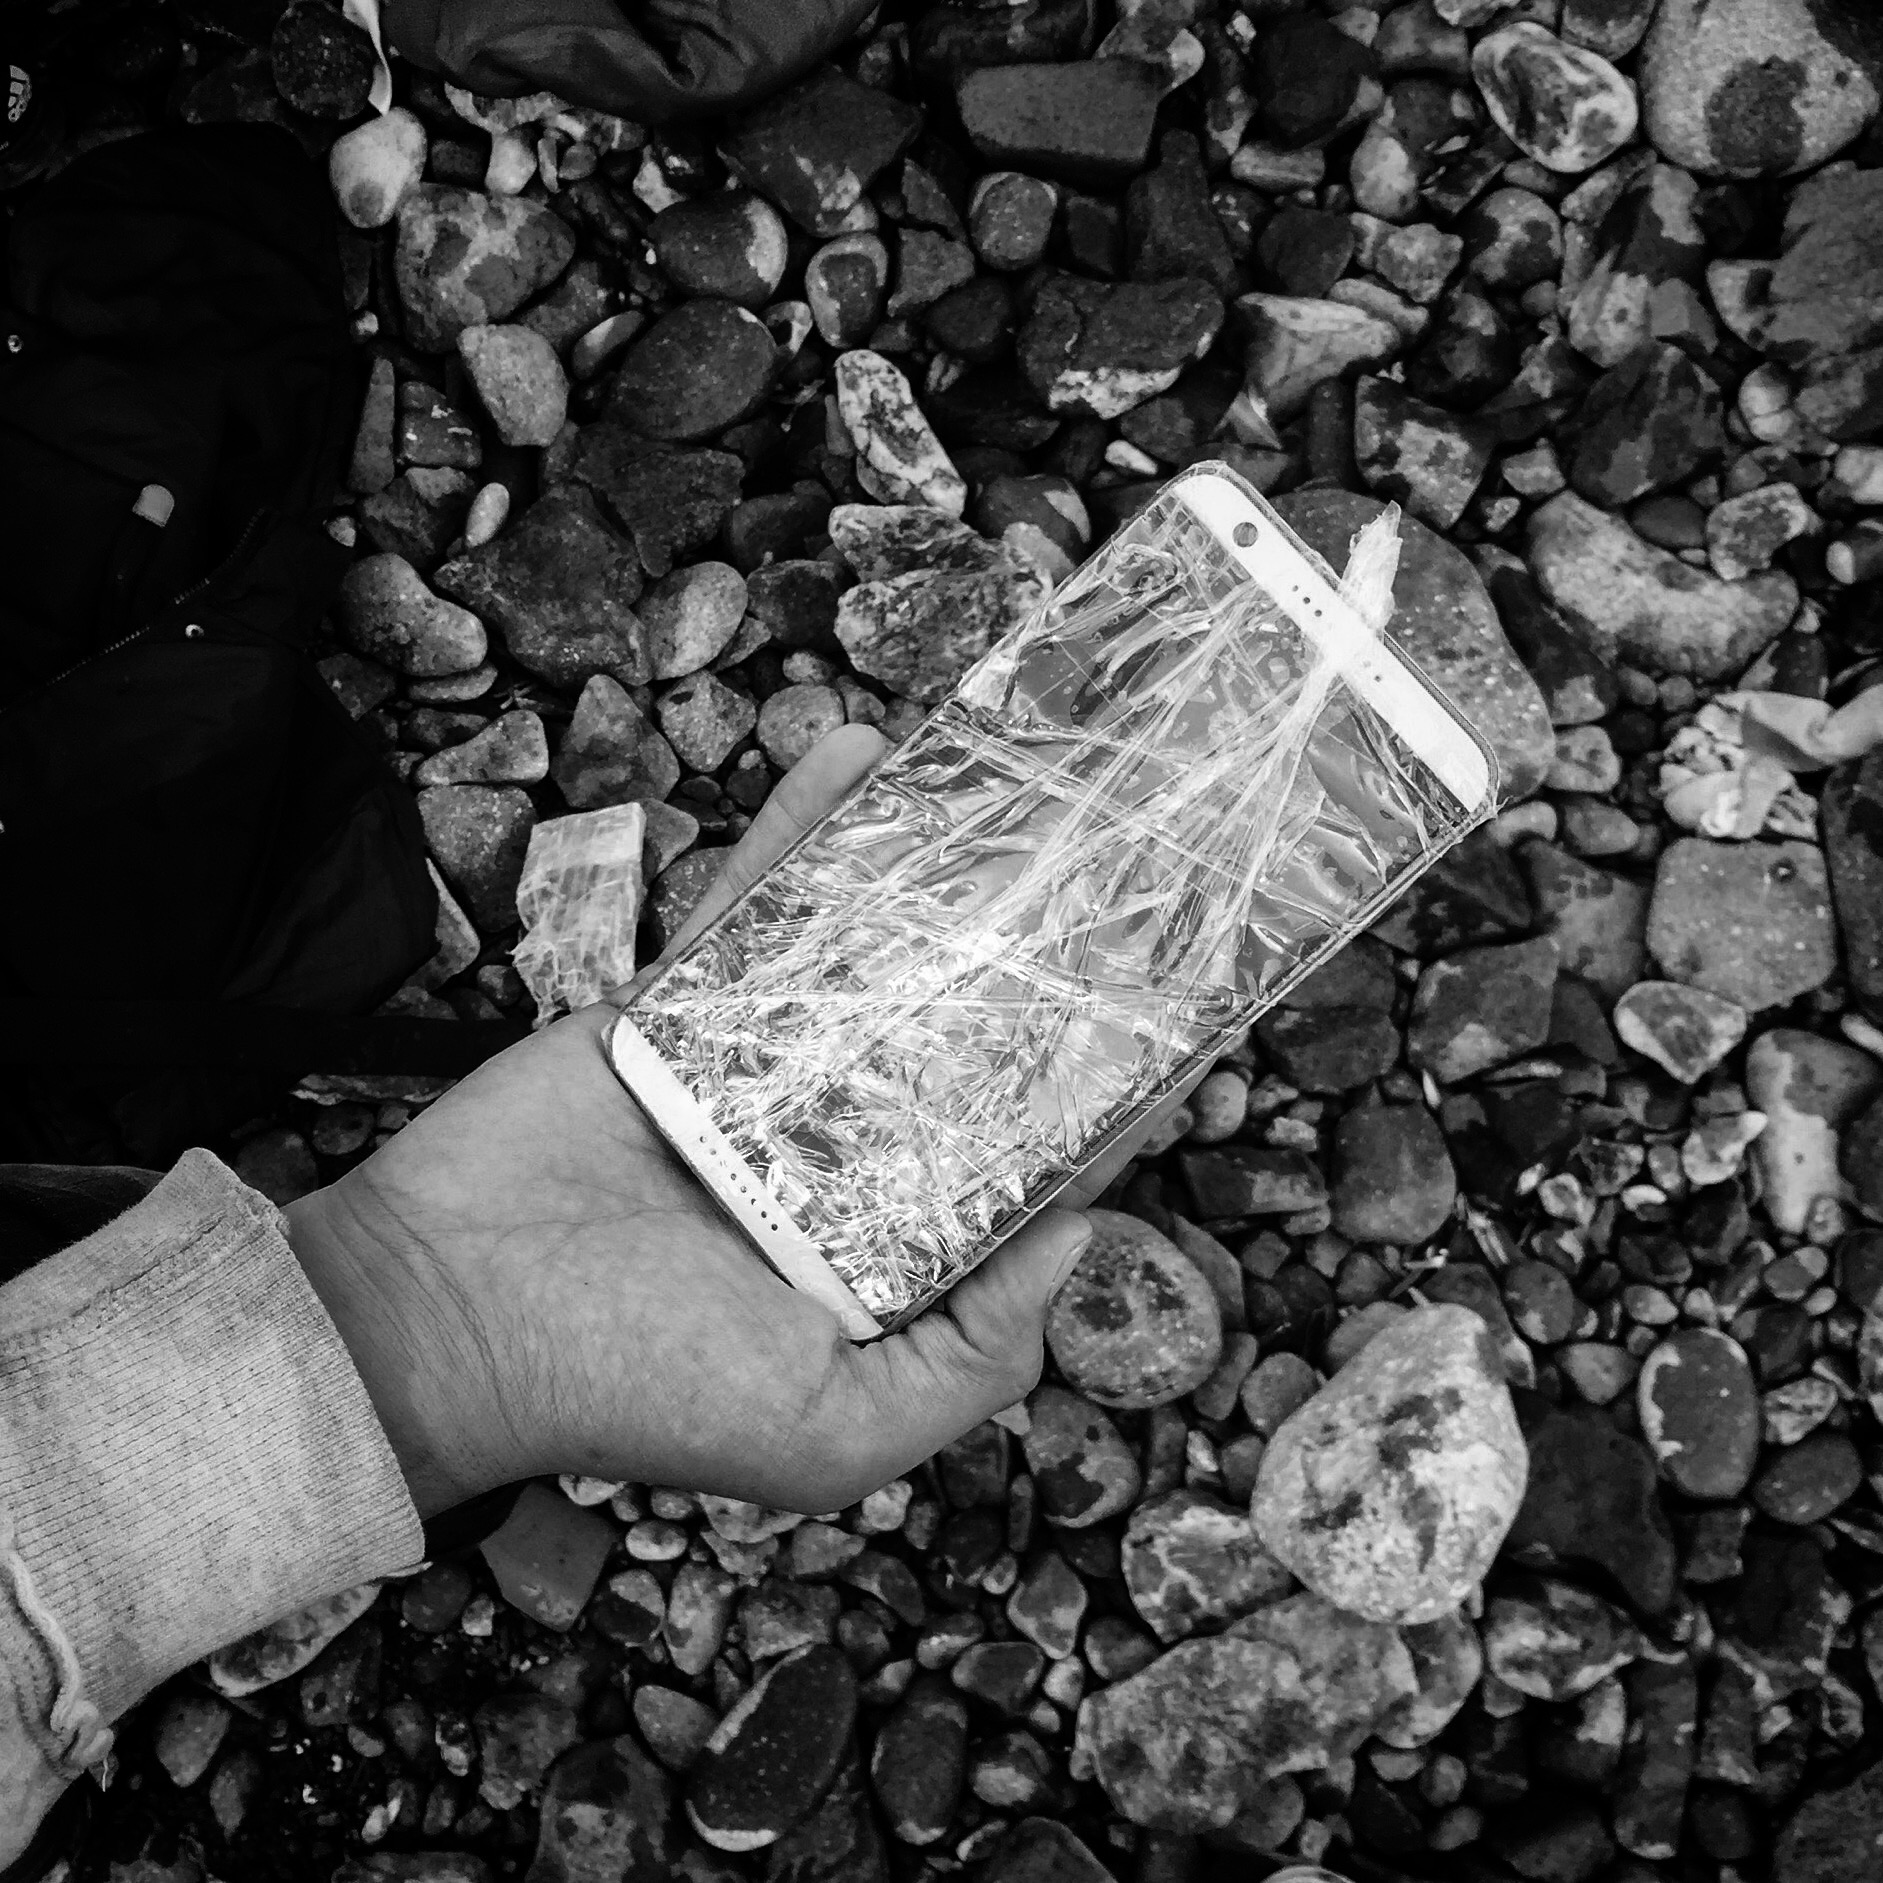 A cellphone protected by plastic. Lesbos, Greece.